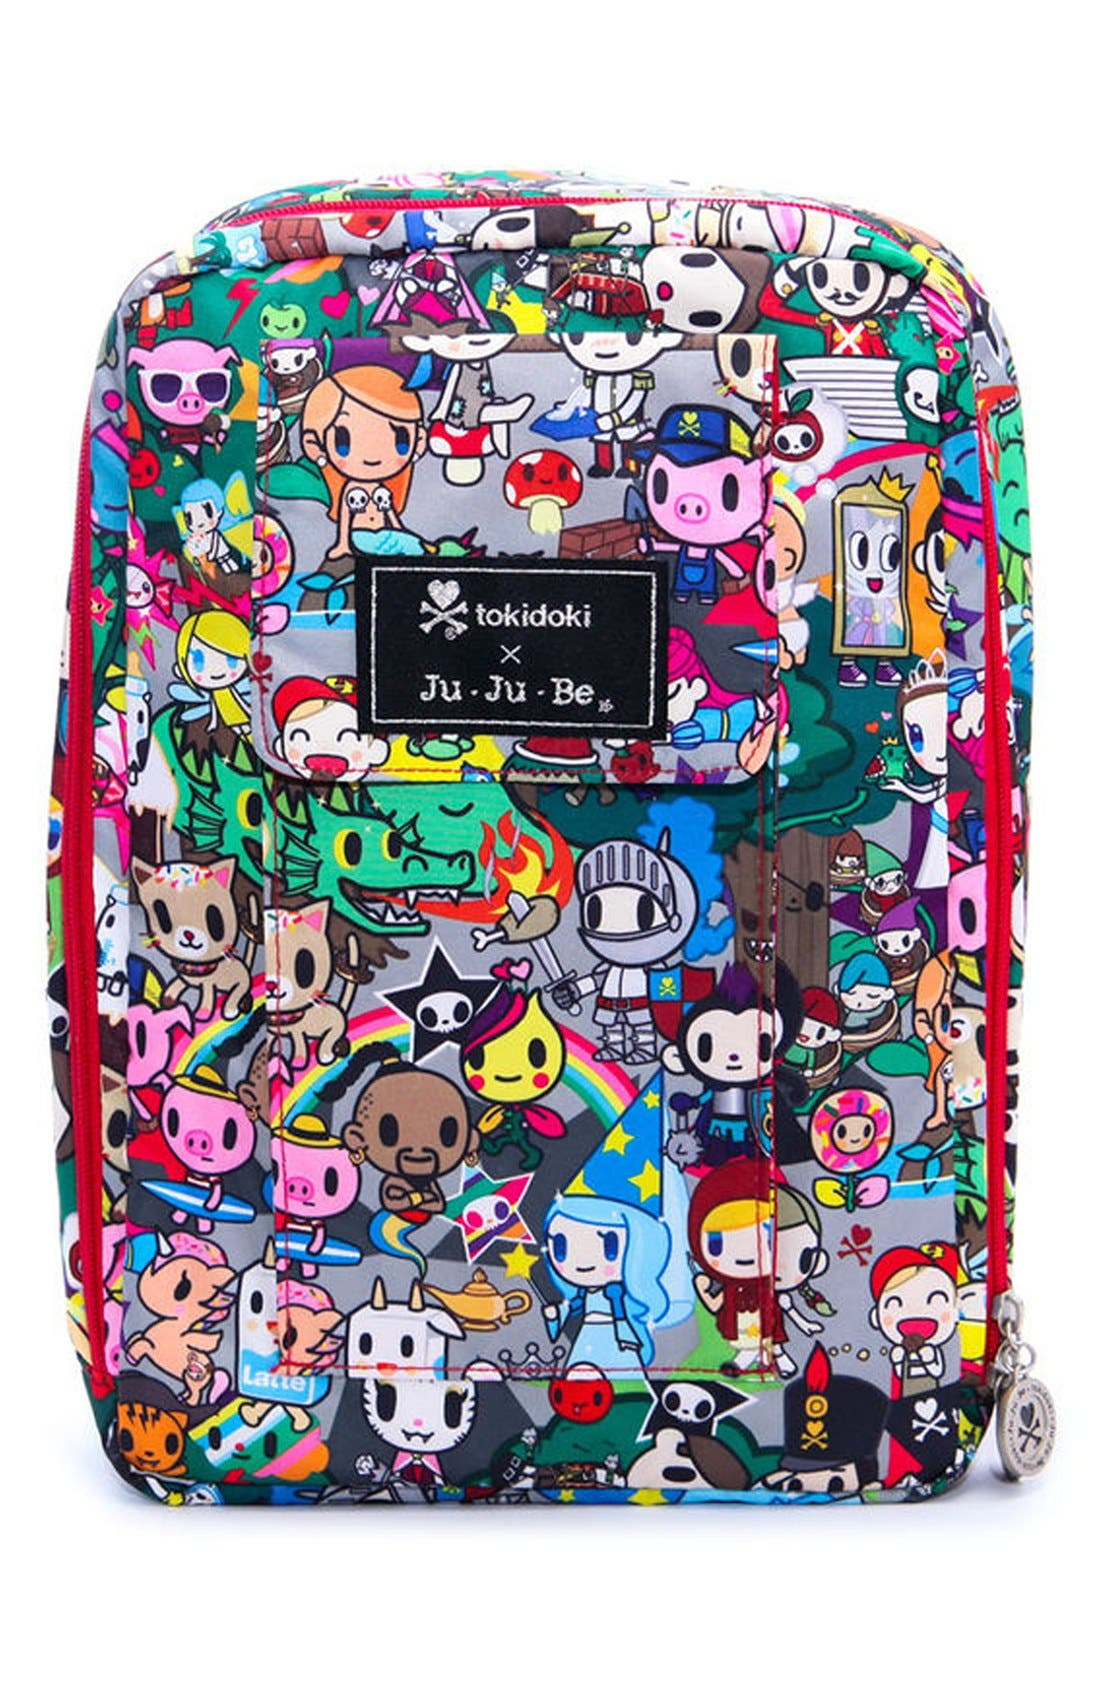 tokidoki x Ju-Ju-Be 'Mini Be' Backpack,                         Main,                         color, 603